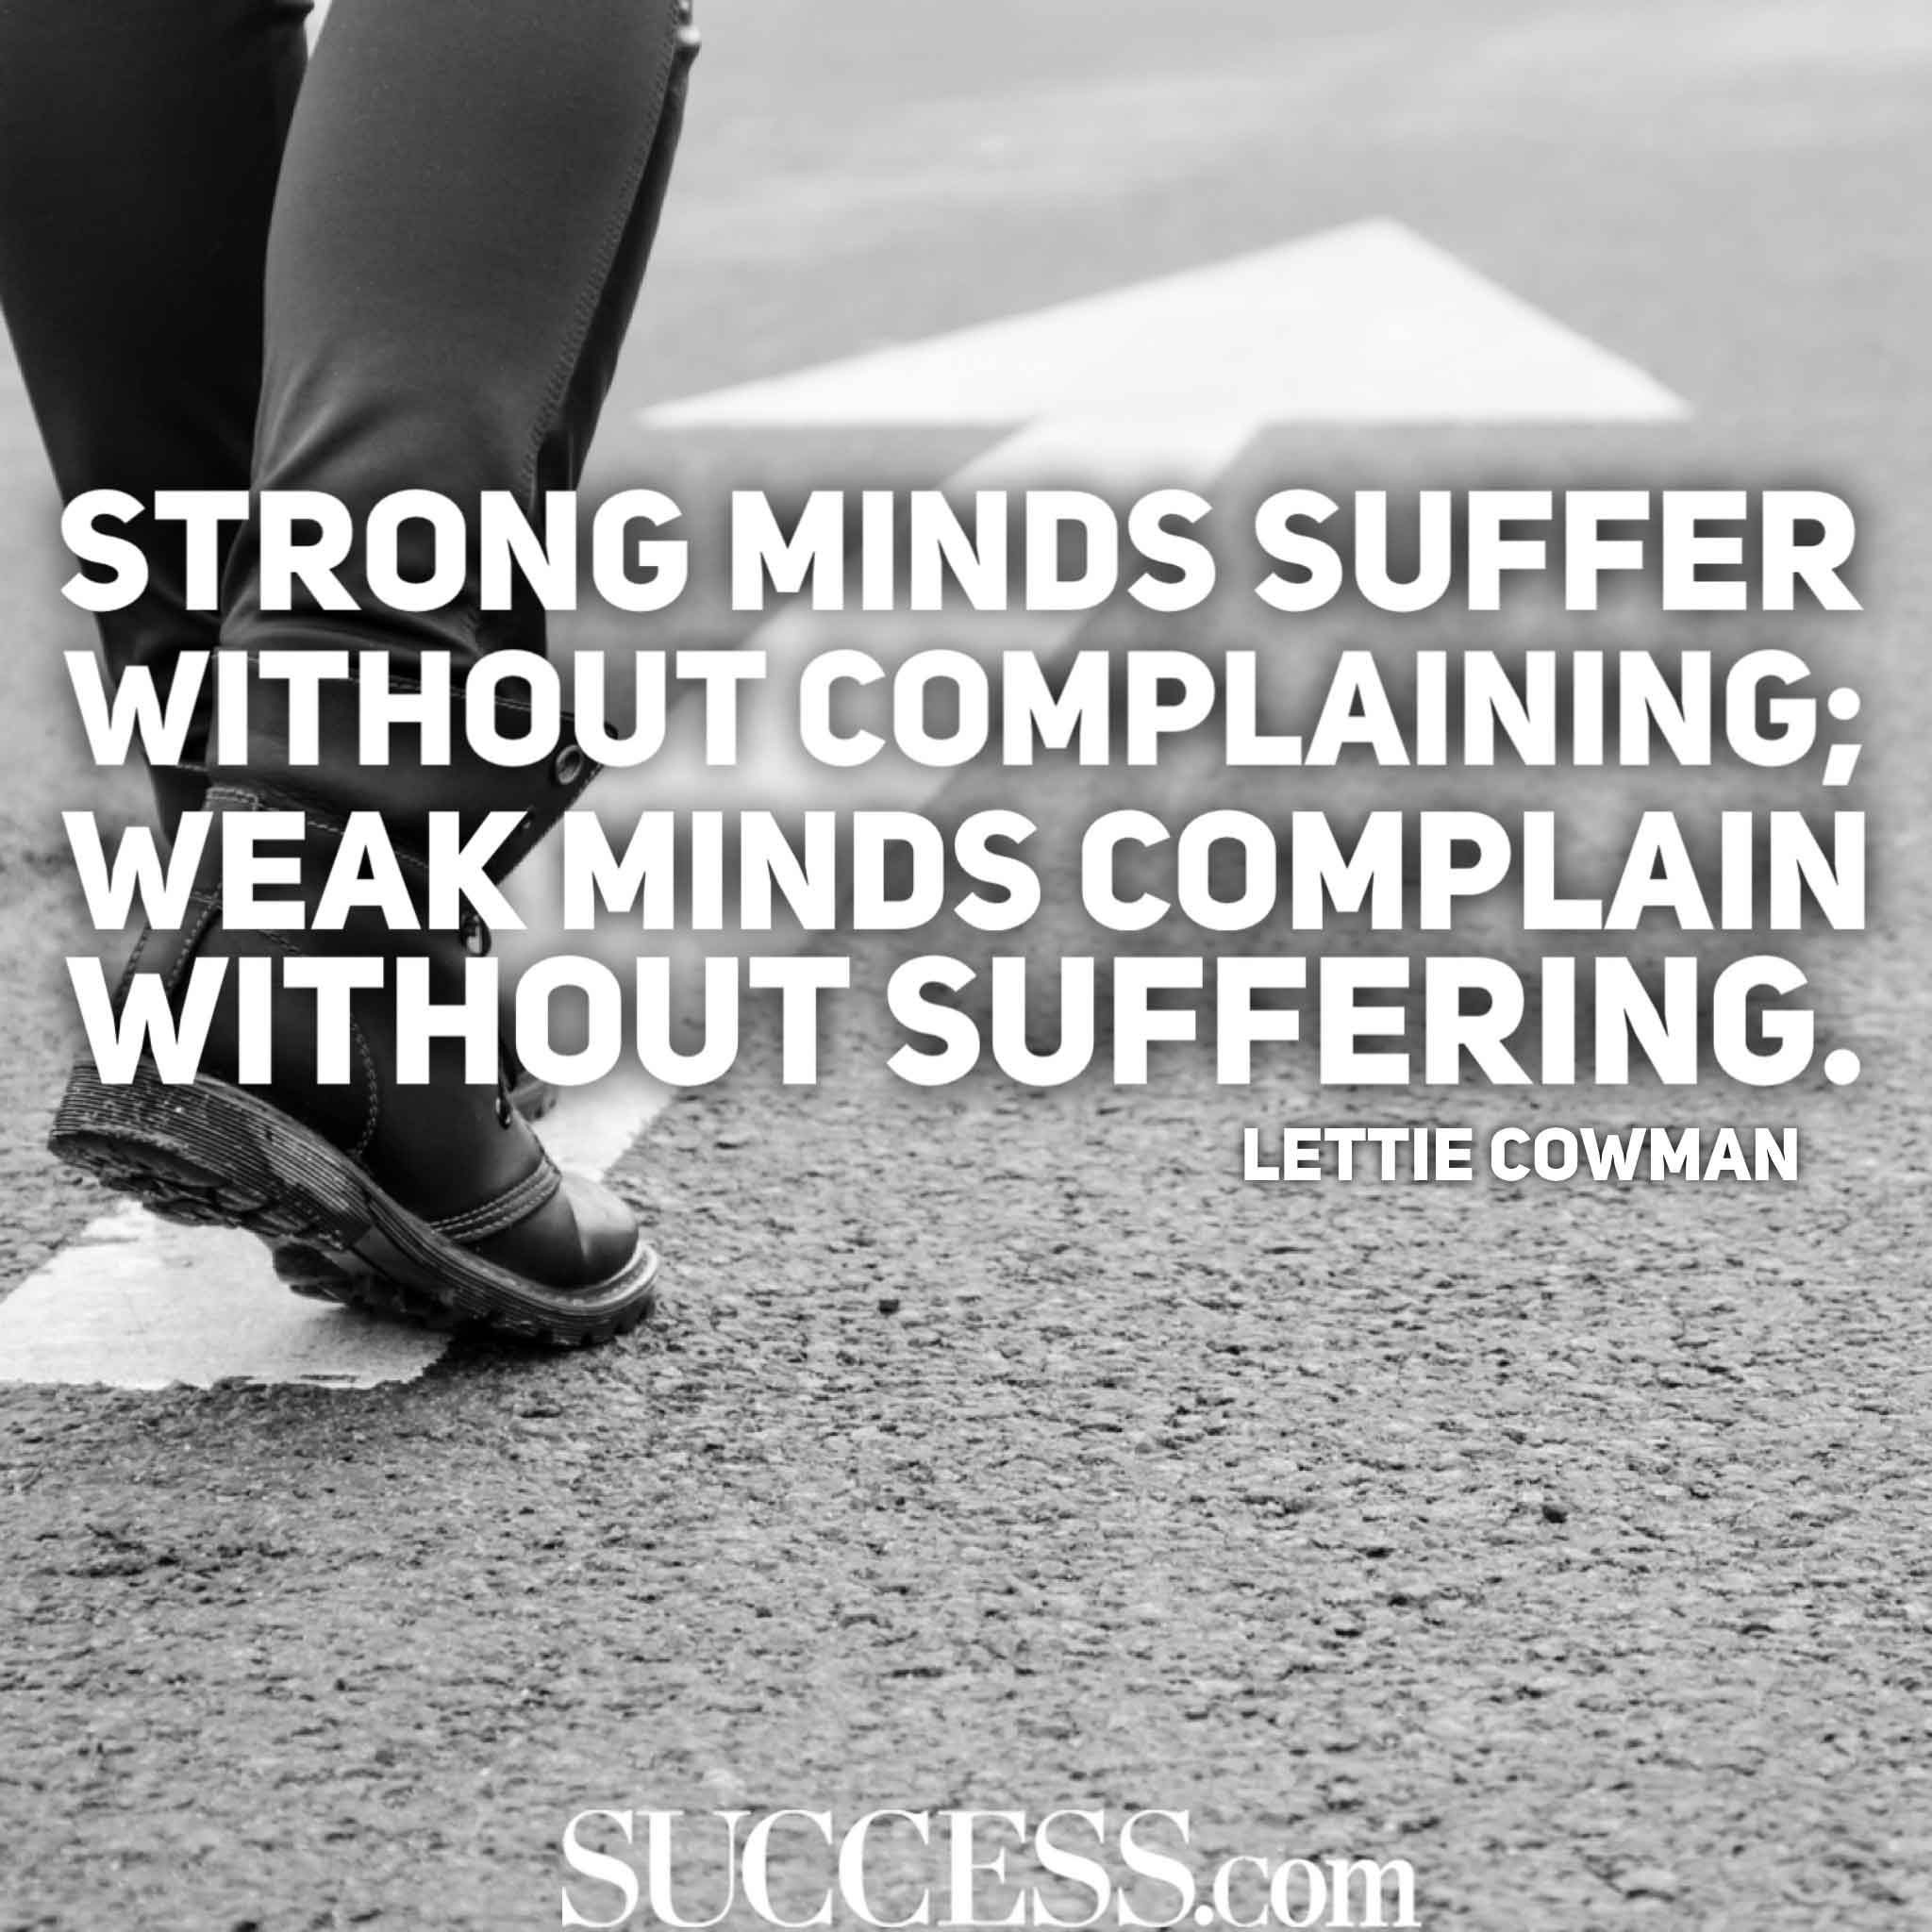 17 Powerful Quotes to Strengthen Your Mind